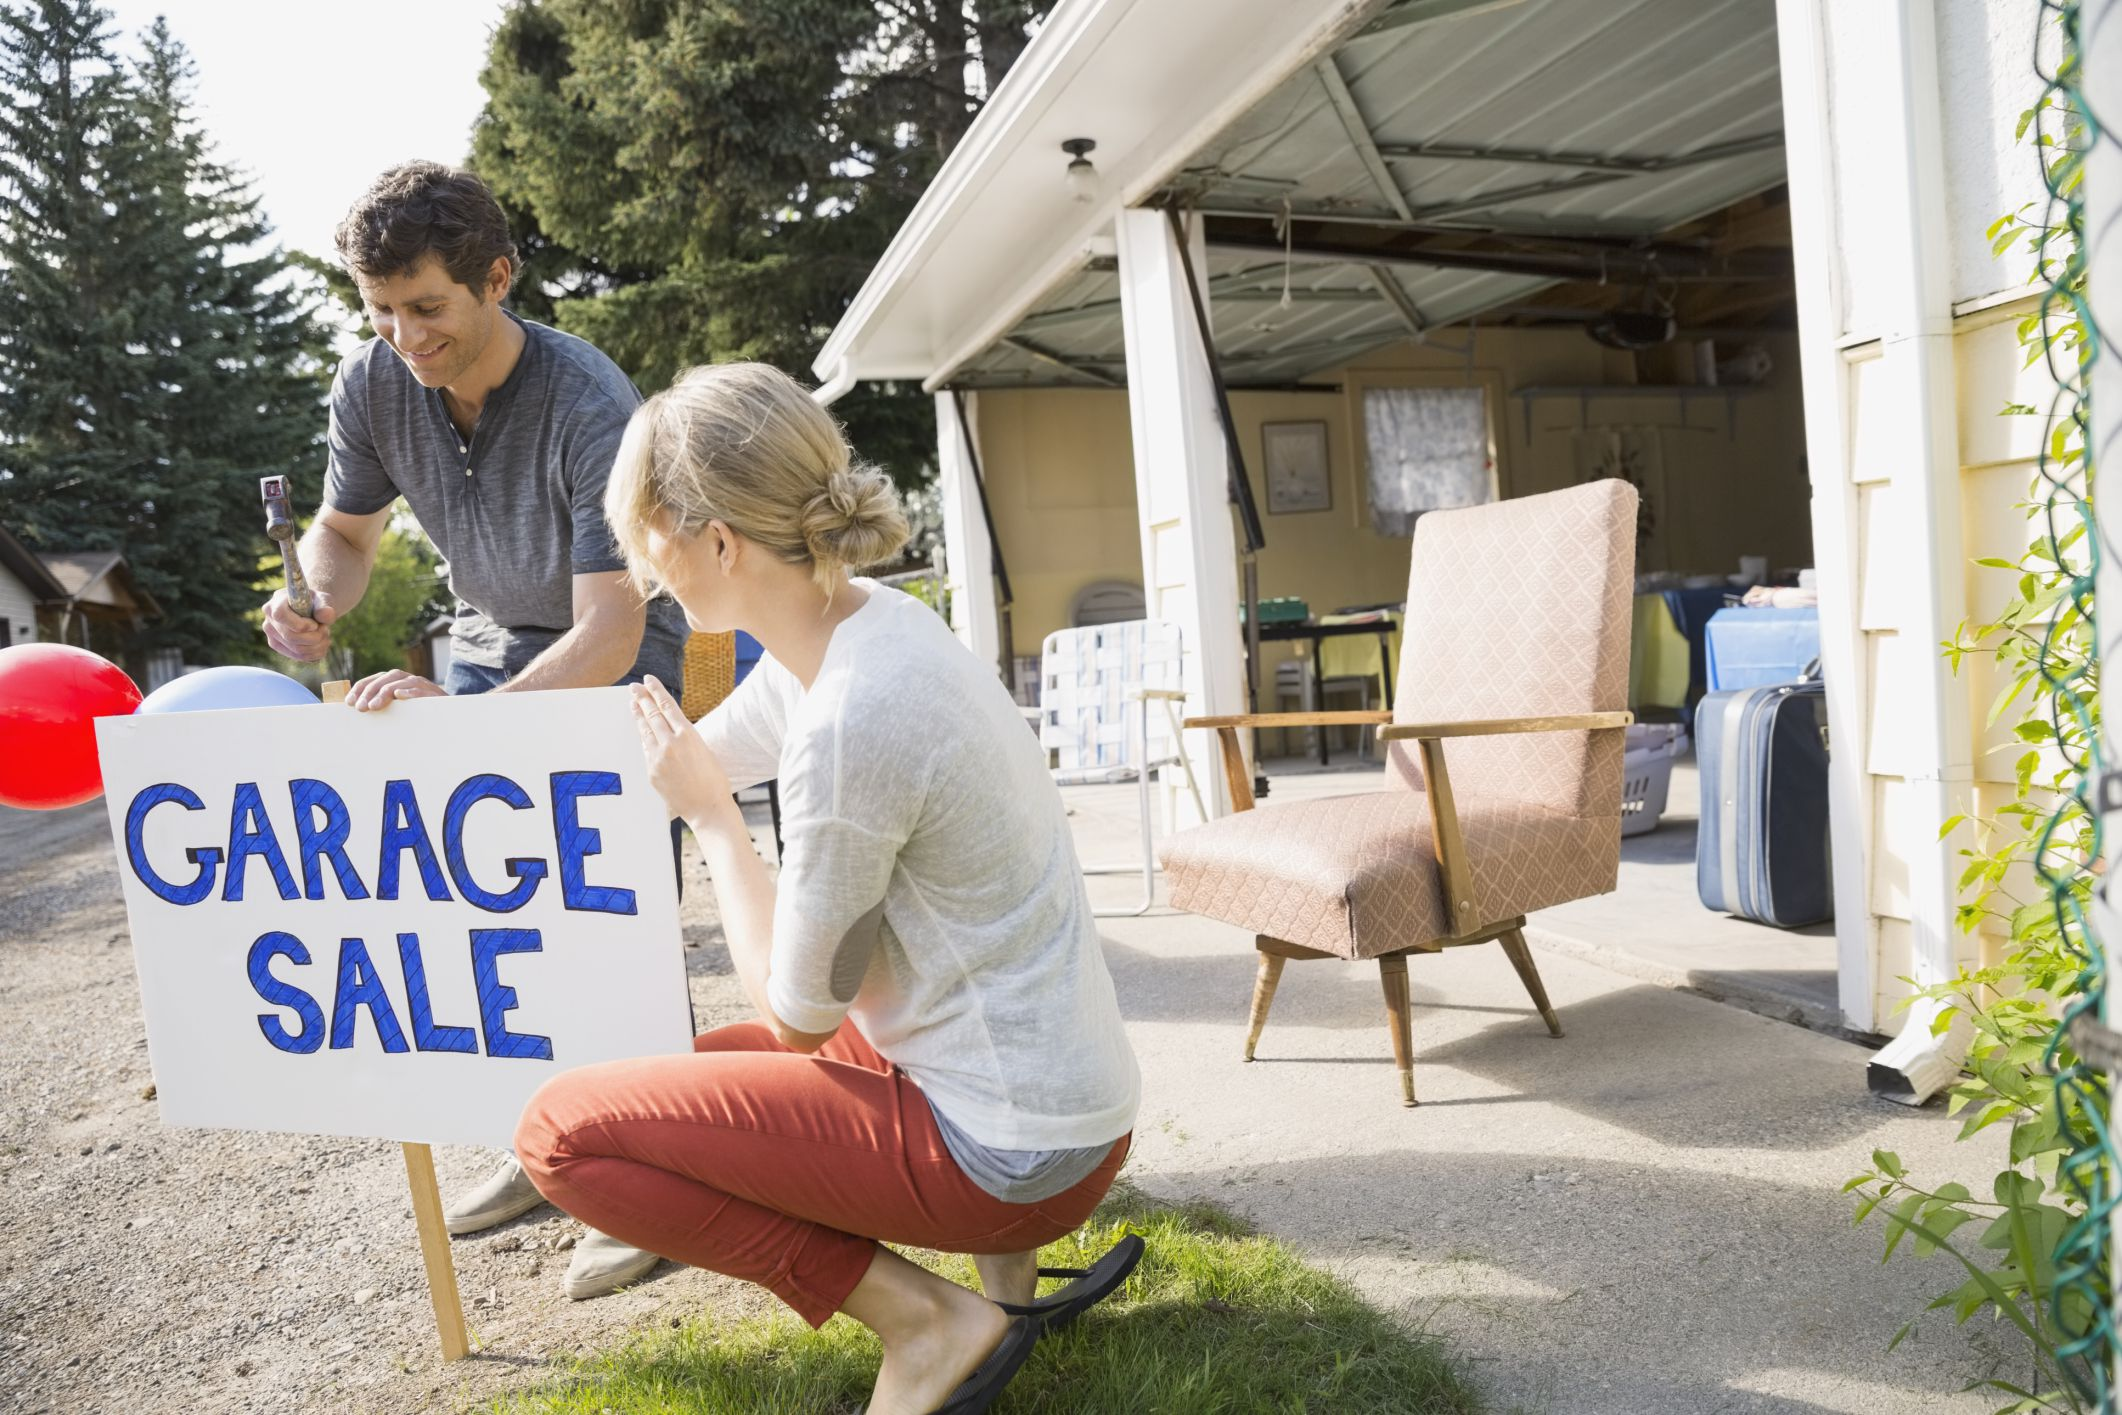 Garage Sales, Tag Sales: What's the Difference?